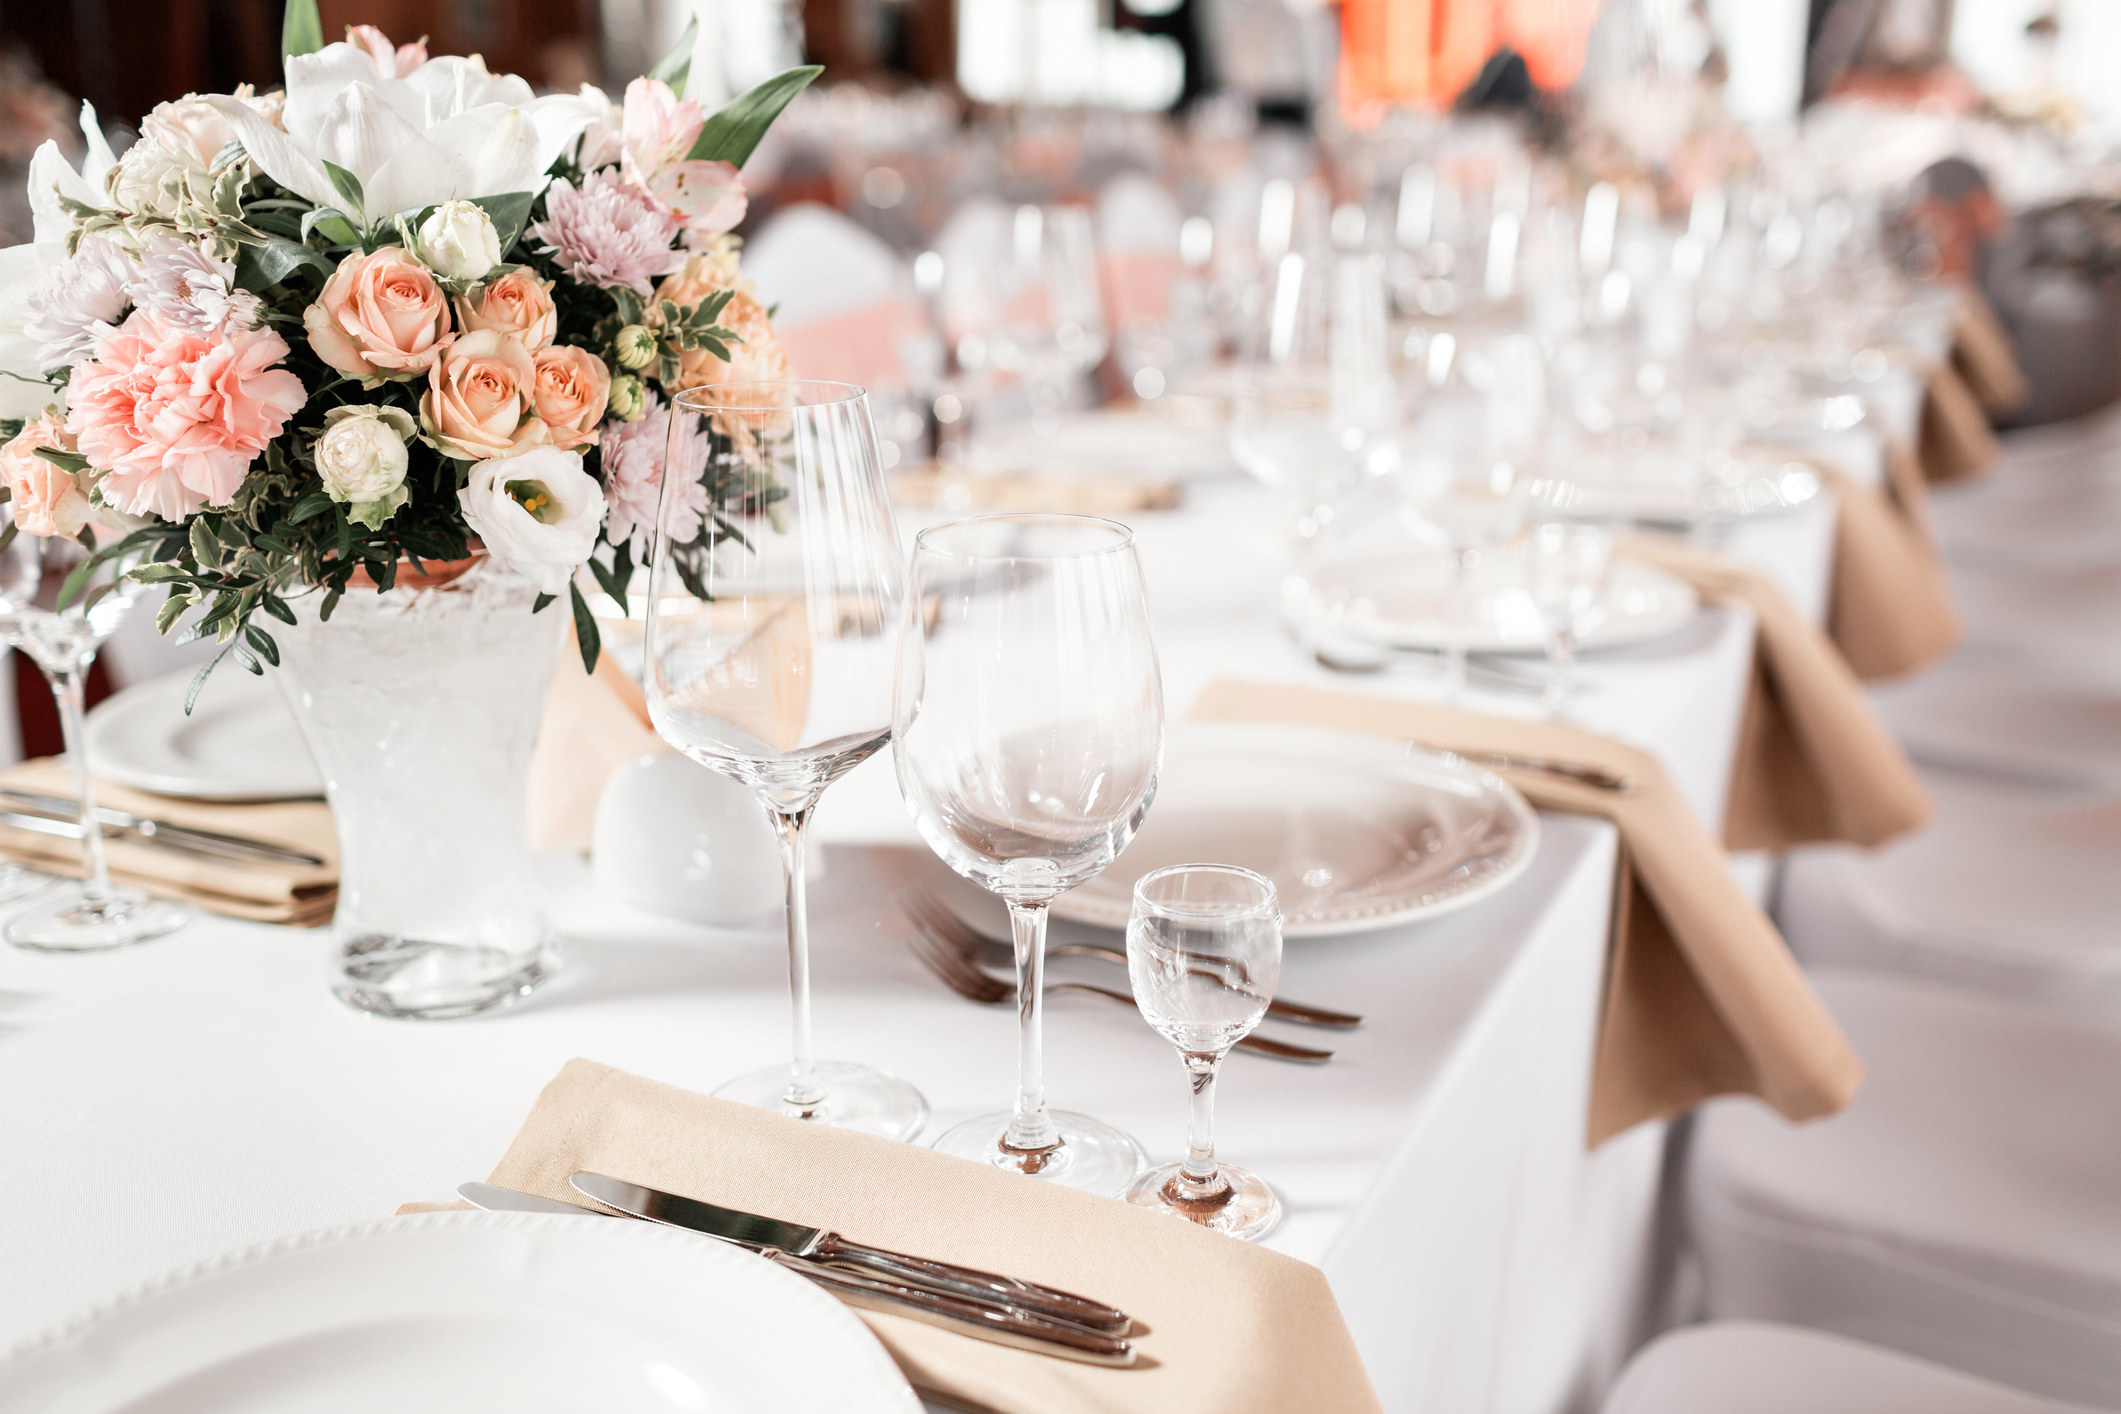 Tables set for an event party or wedding reception luxury elegant table setting dinner in a restaurant with glasses and dishes